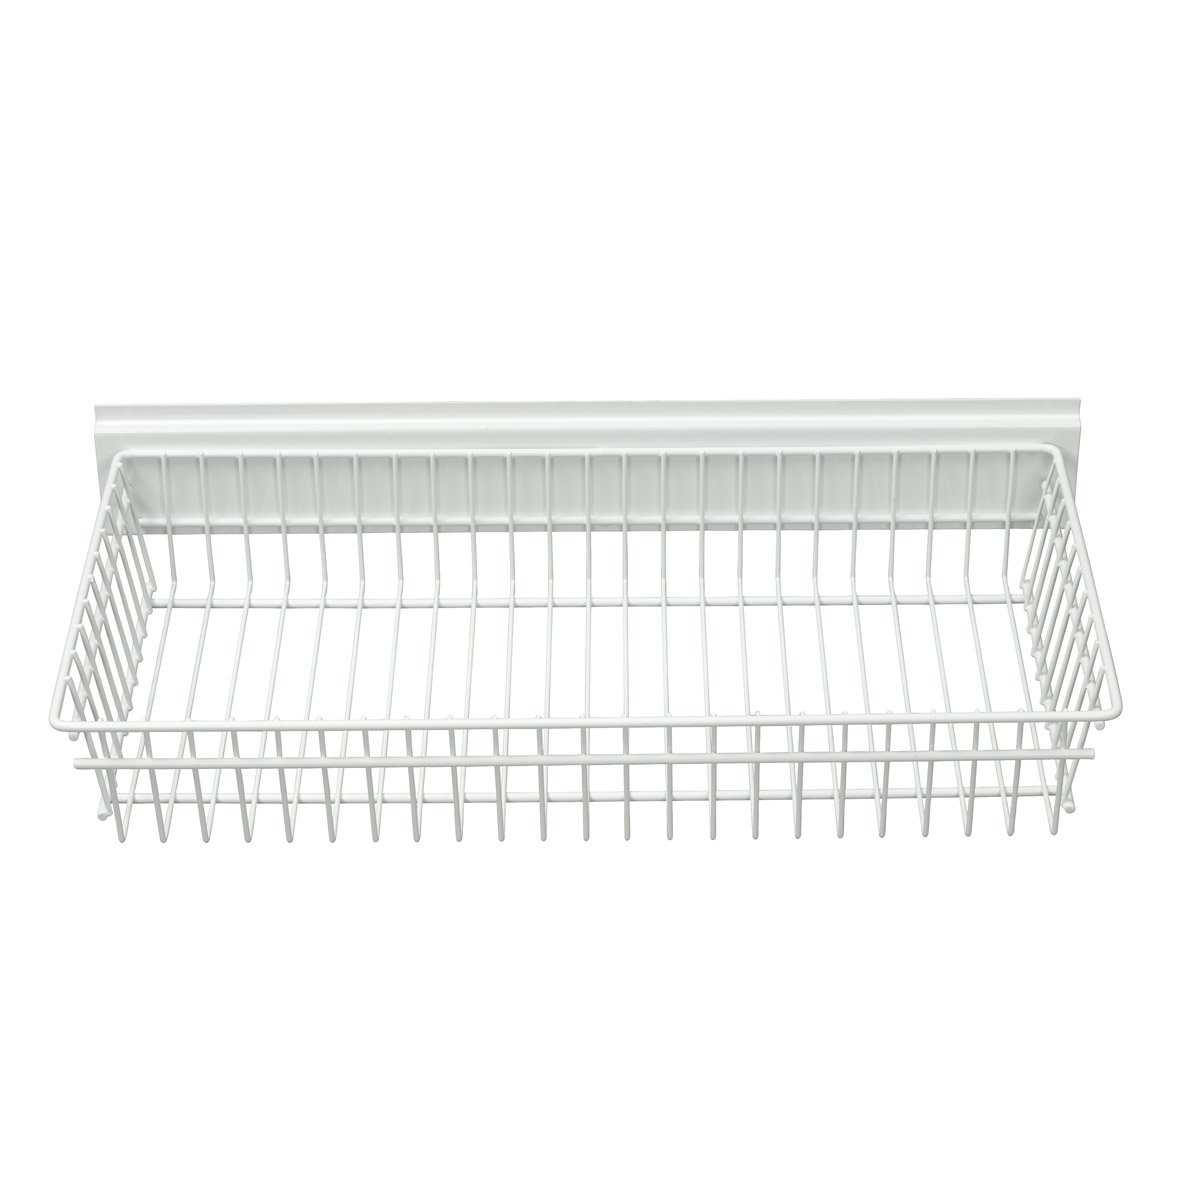 Garage Tek Shallow Basket for Garage, Kitchen, Office Storage, Mounts on TekTrak and Wall Panel Products